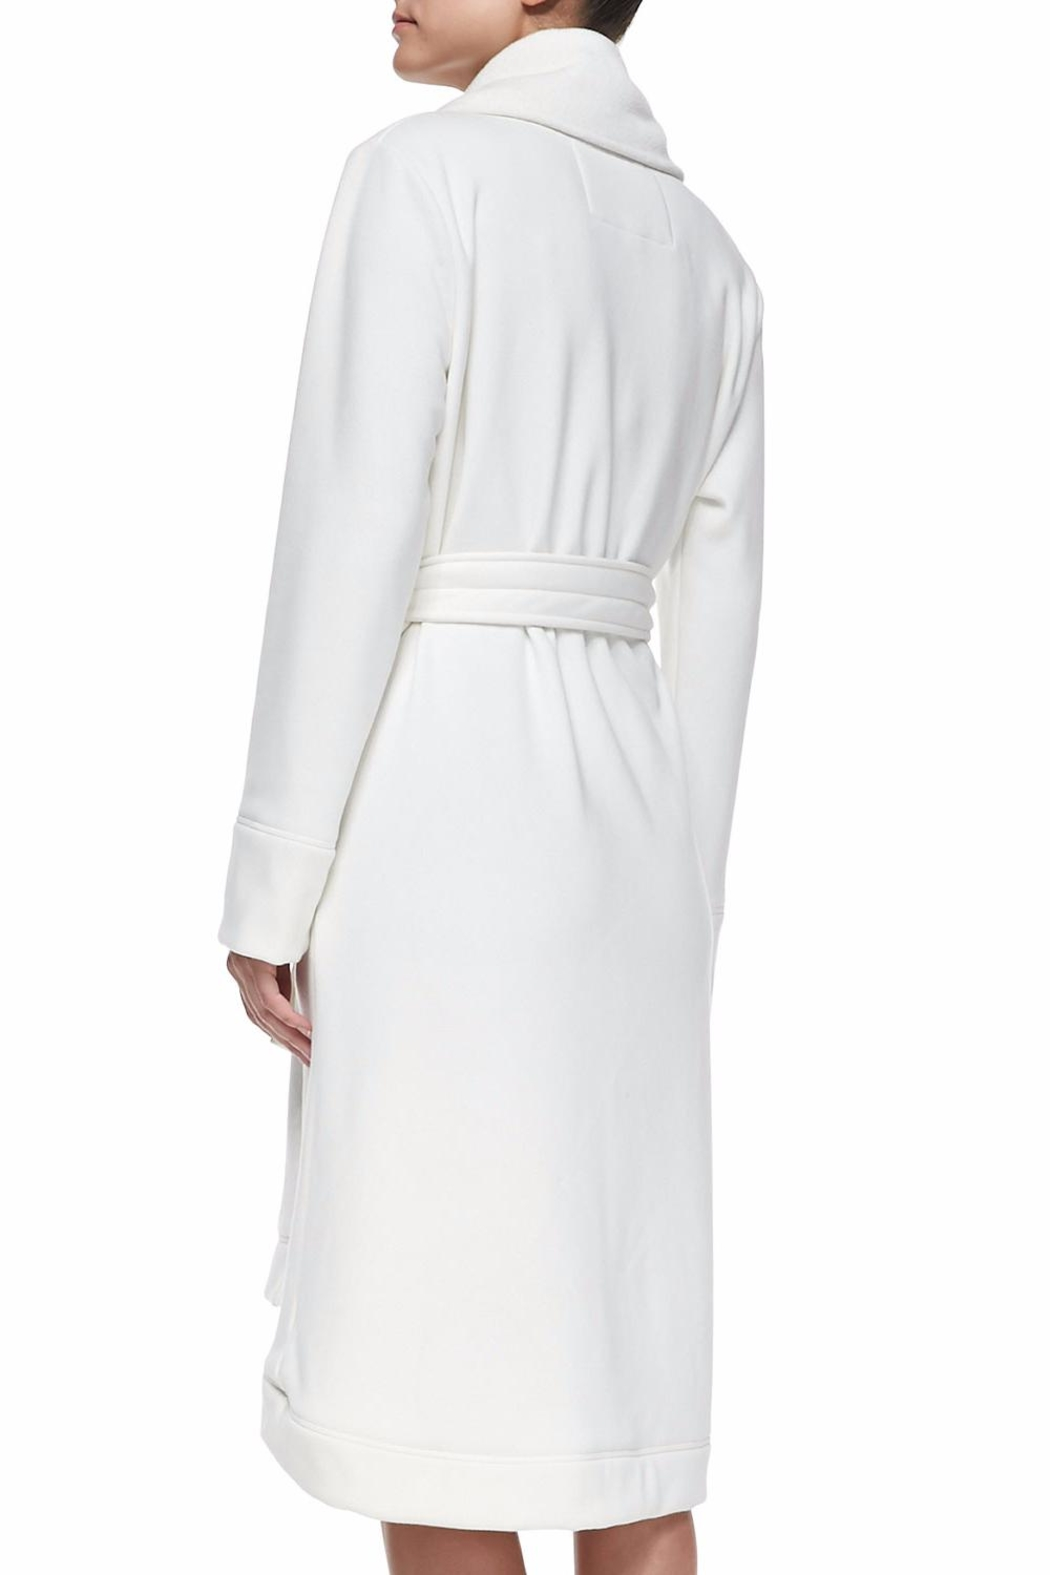 UGG Australia Duffield Robe - Back Cropped Image